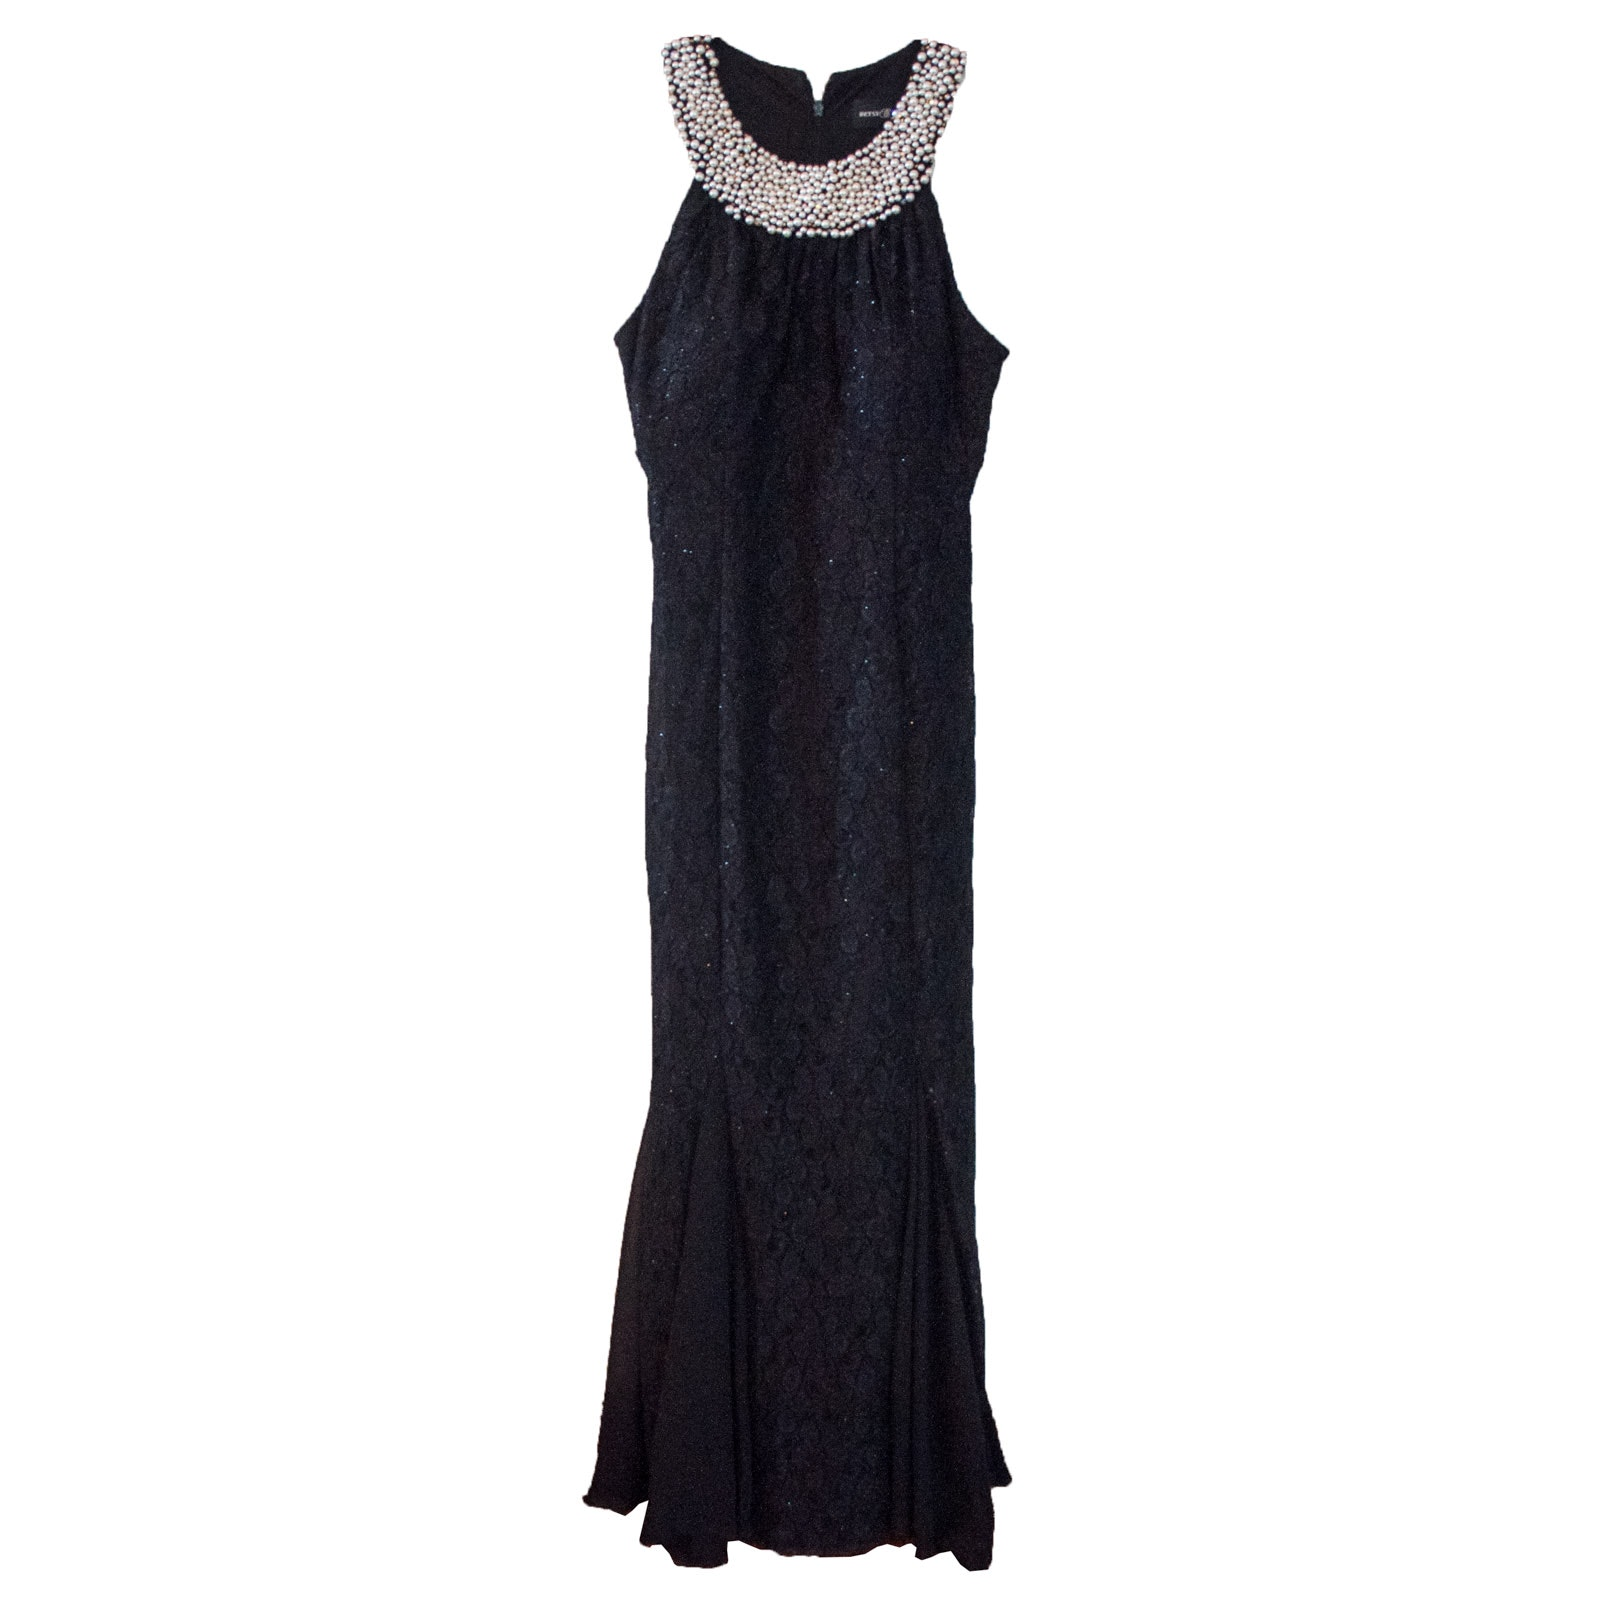 Betsy Adam Black Sleeveless Evening Gown with Beaded Neckline